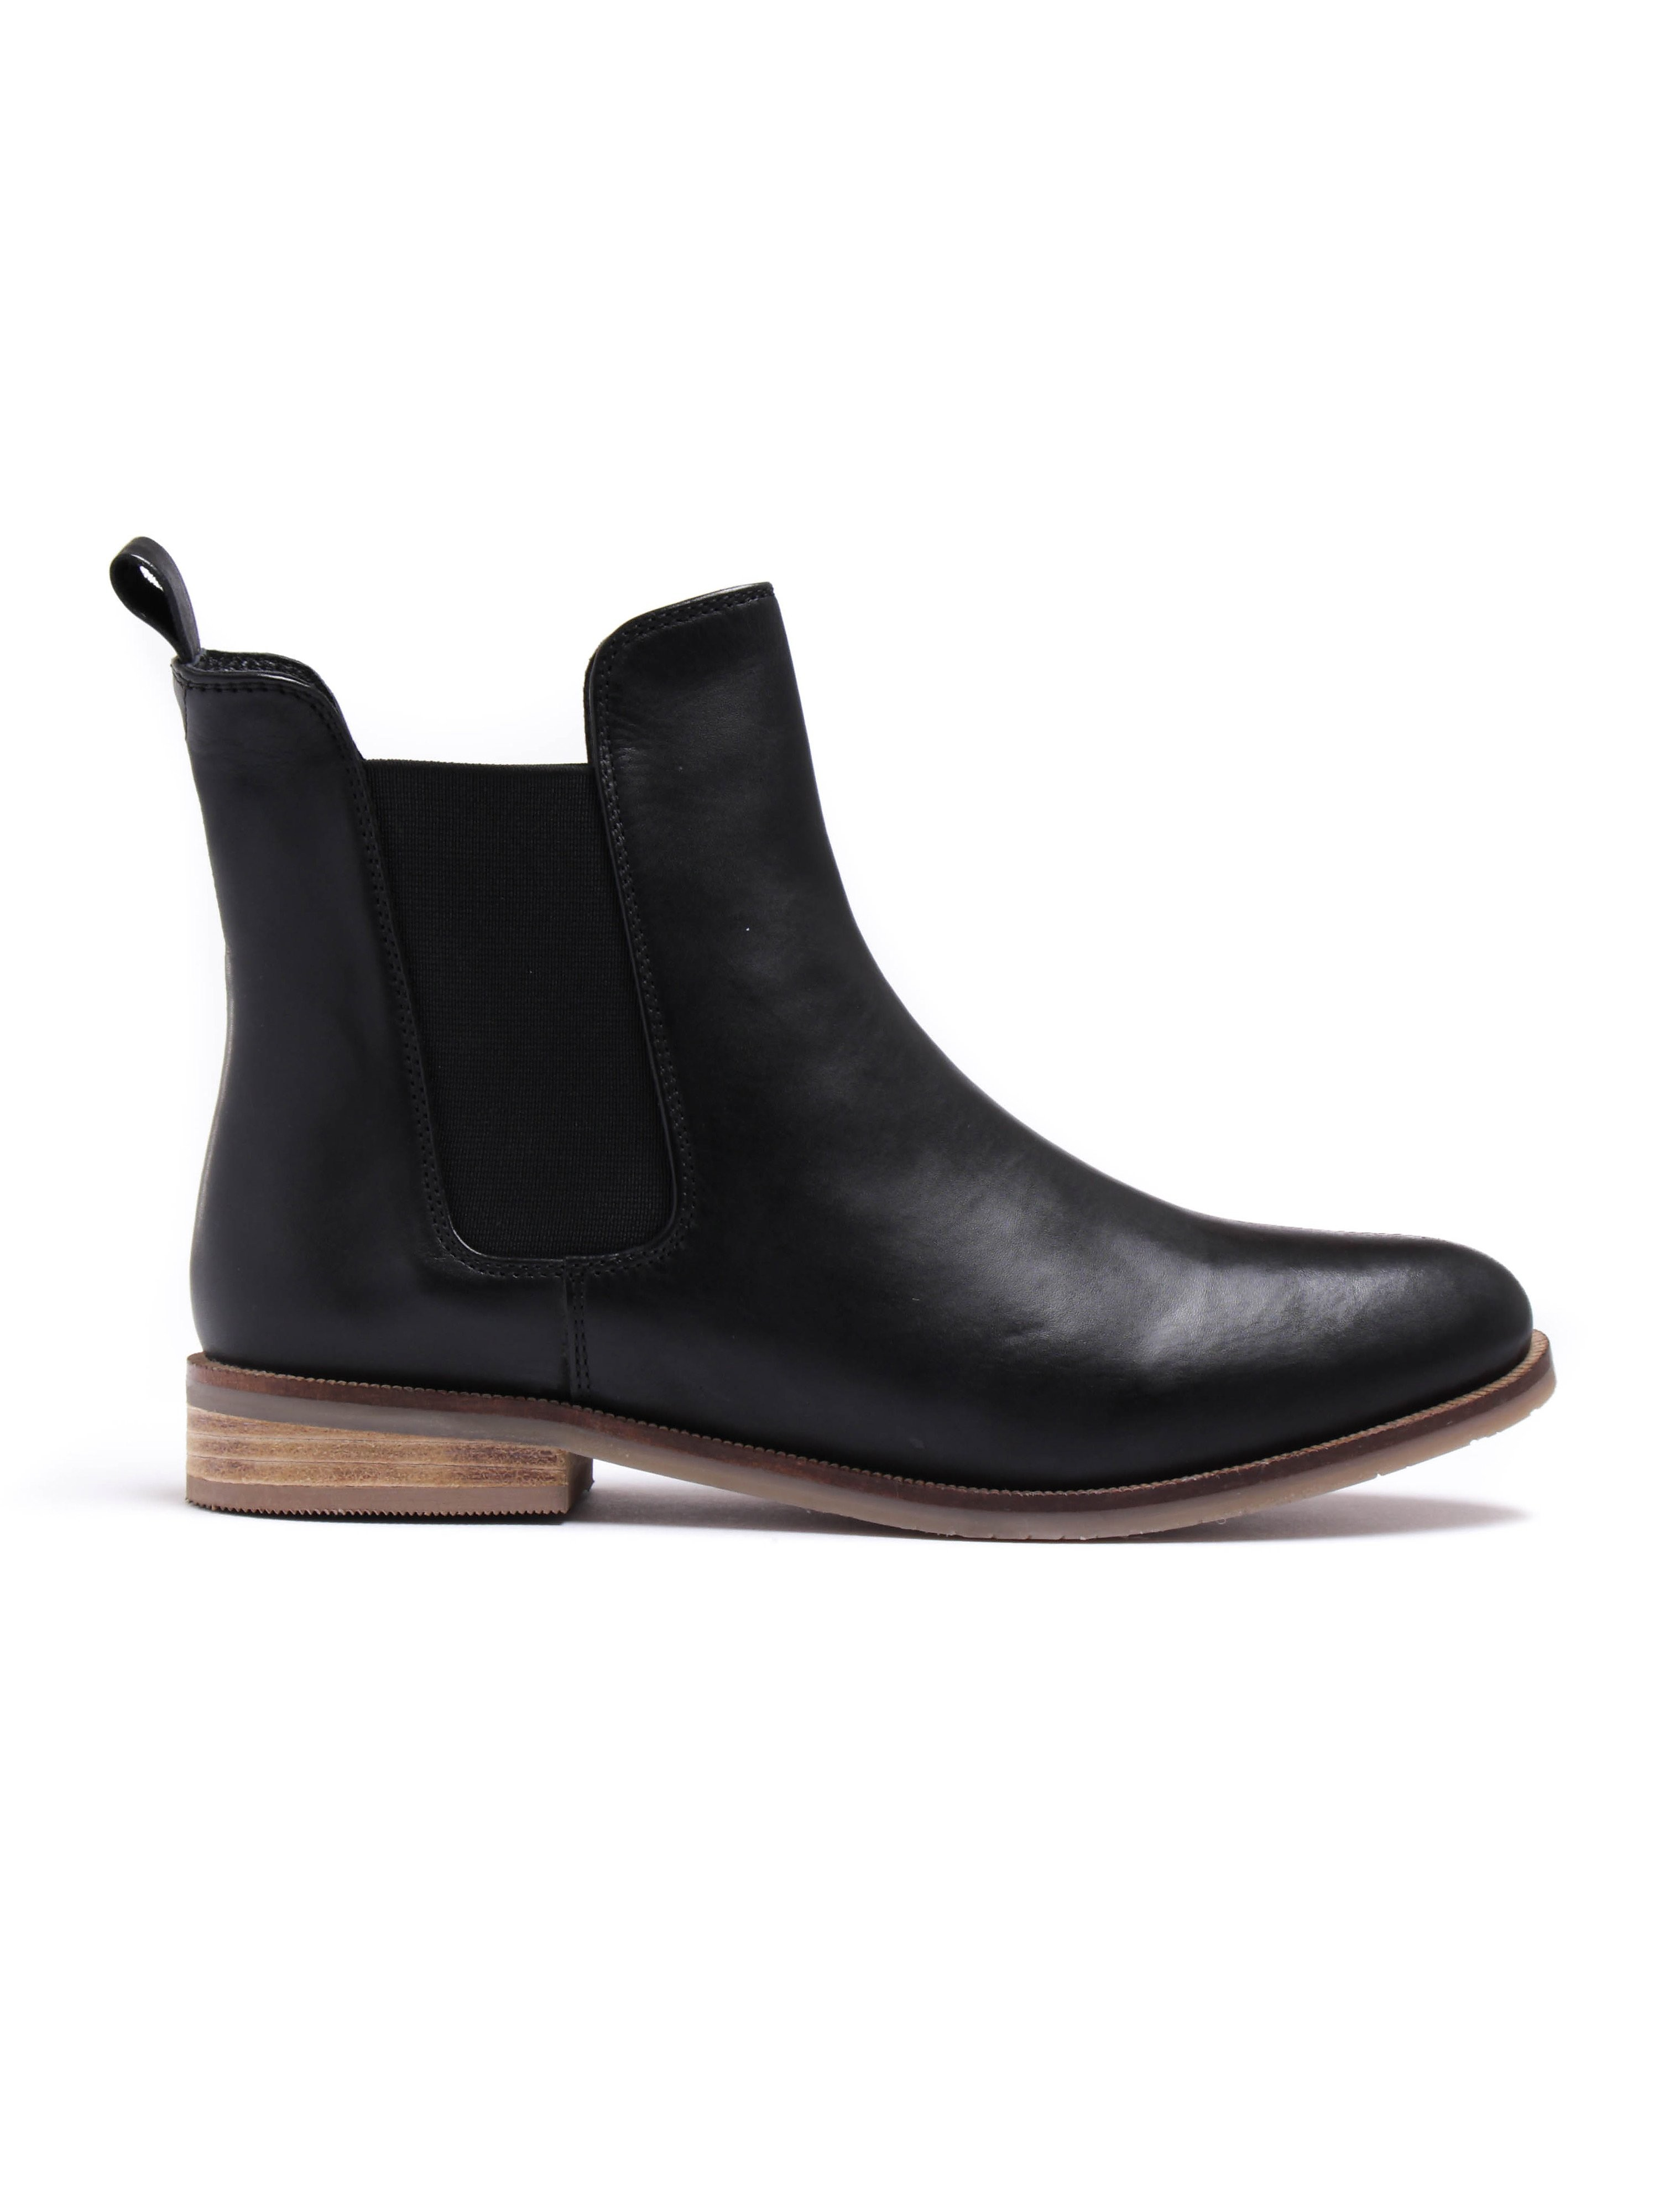 Imogen Womens Black Leather Chelsea Boots